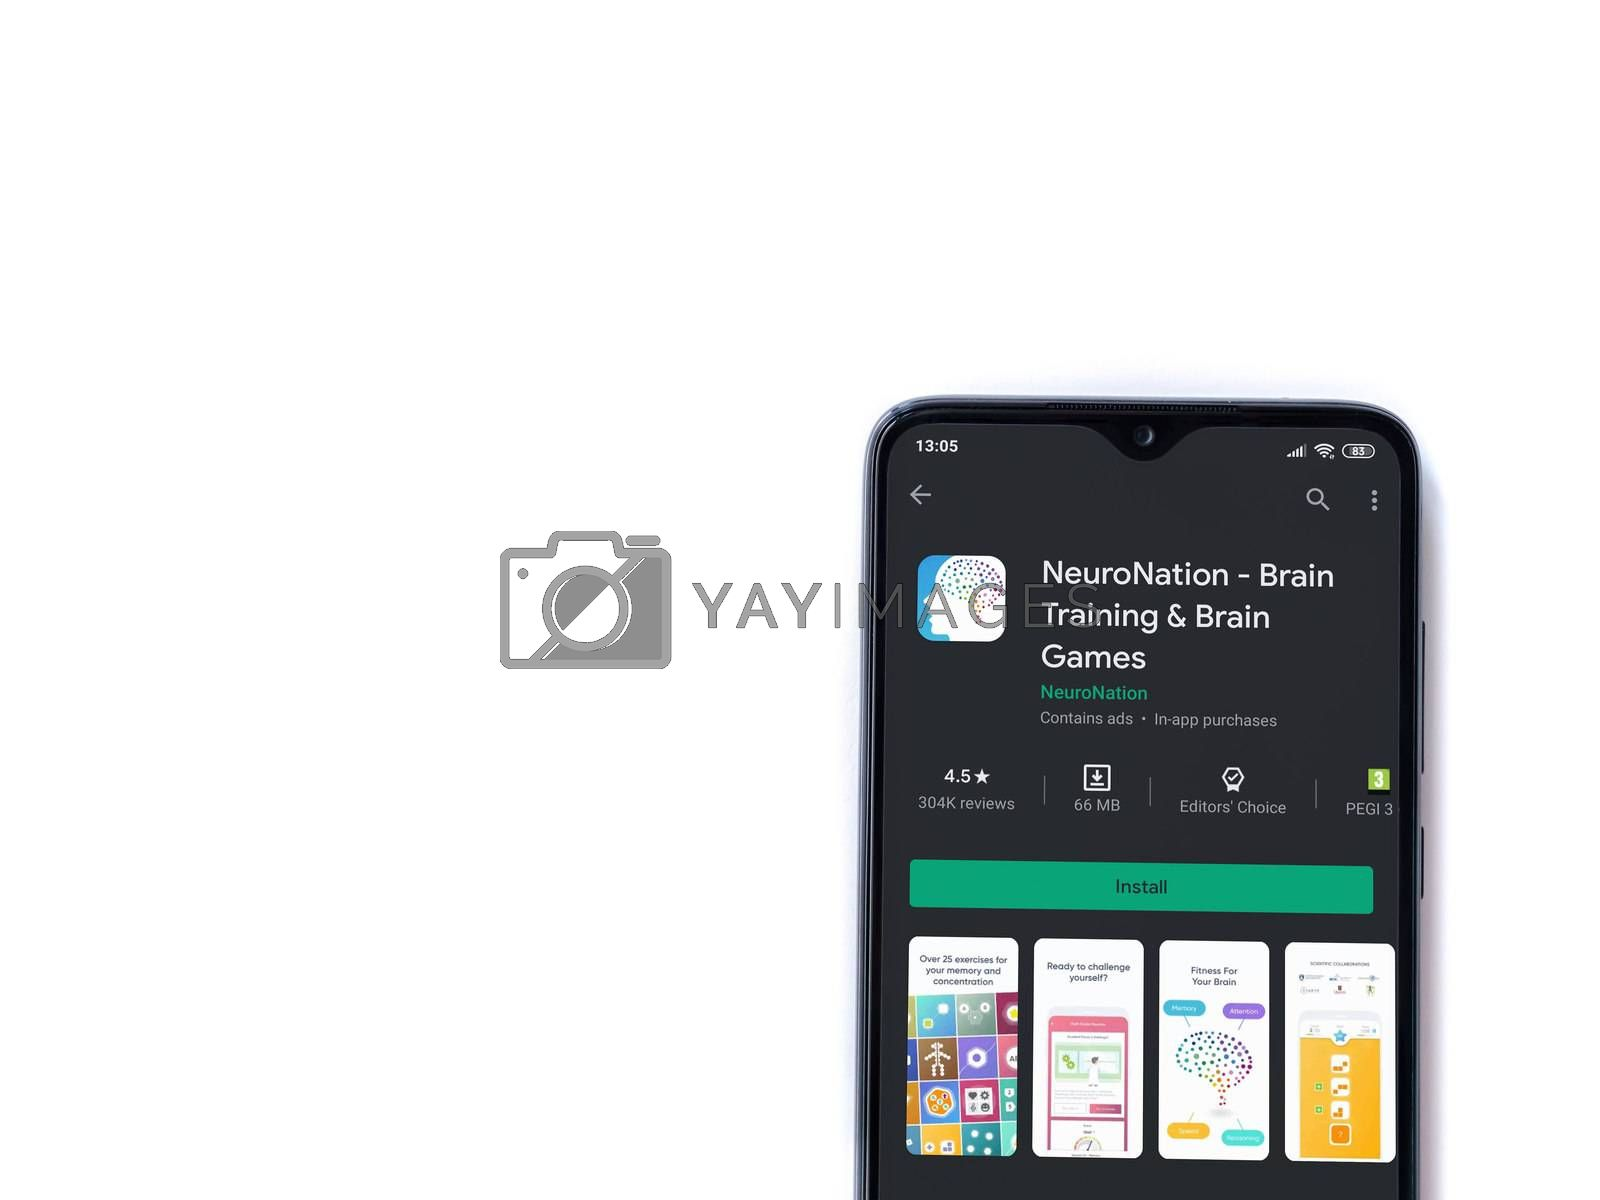 Lod, Israel - July 8, 2020: NeuroNation app play store page on the display of a black mobile smartphone isolated on white background. Top view flat lay with copy space.